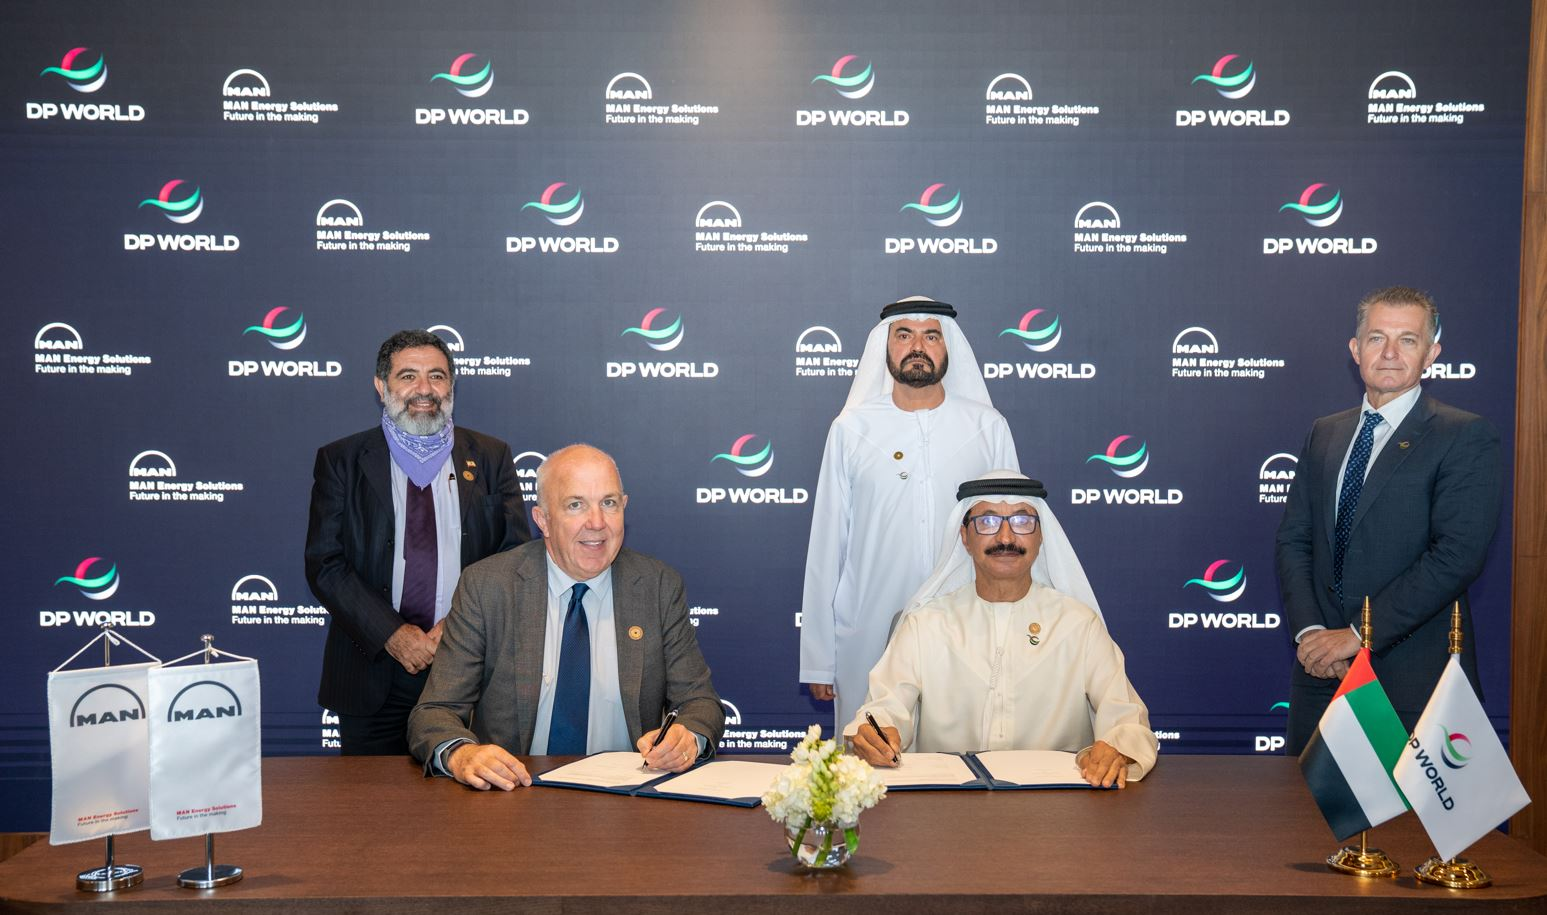 MAN and DP World ink decarbonization pact